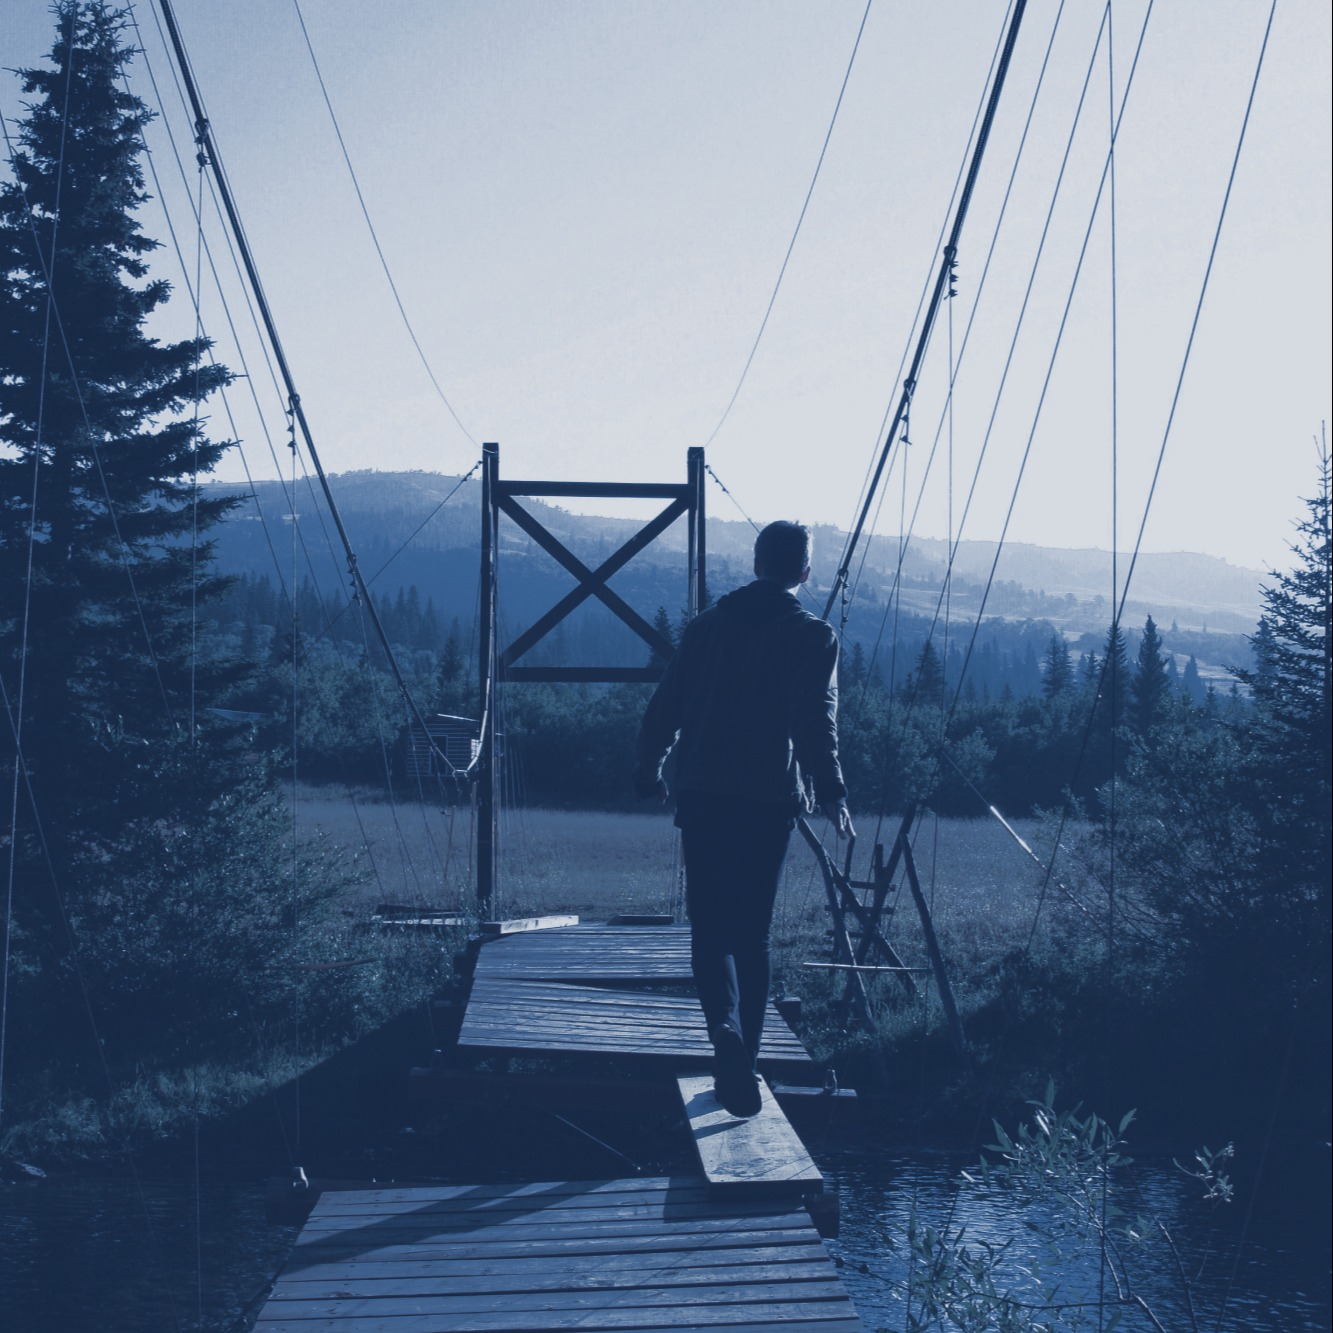 Boy walking on bridge